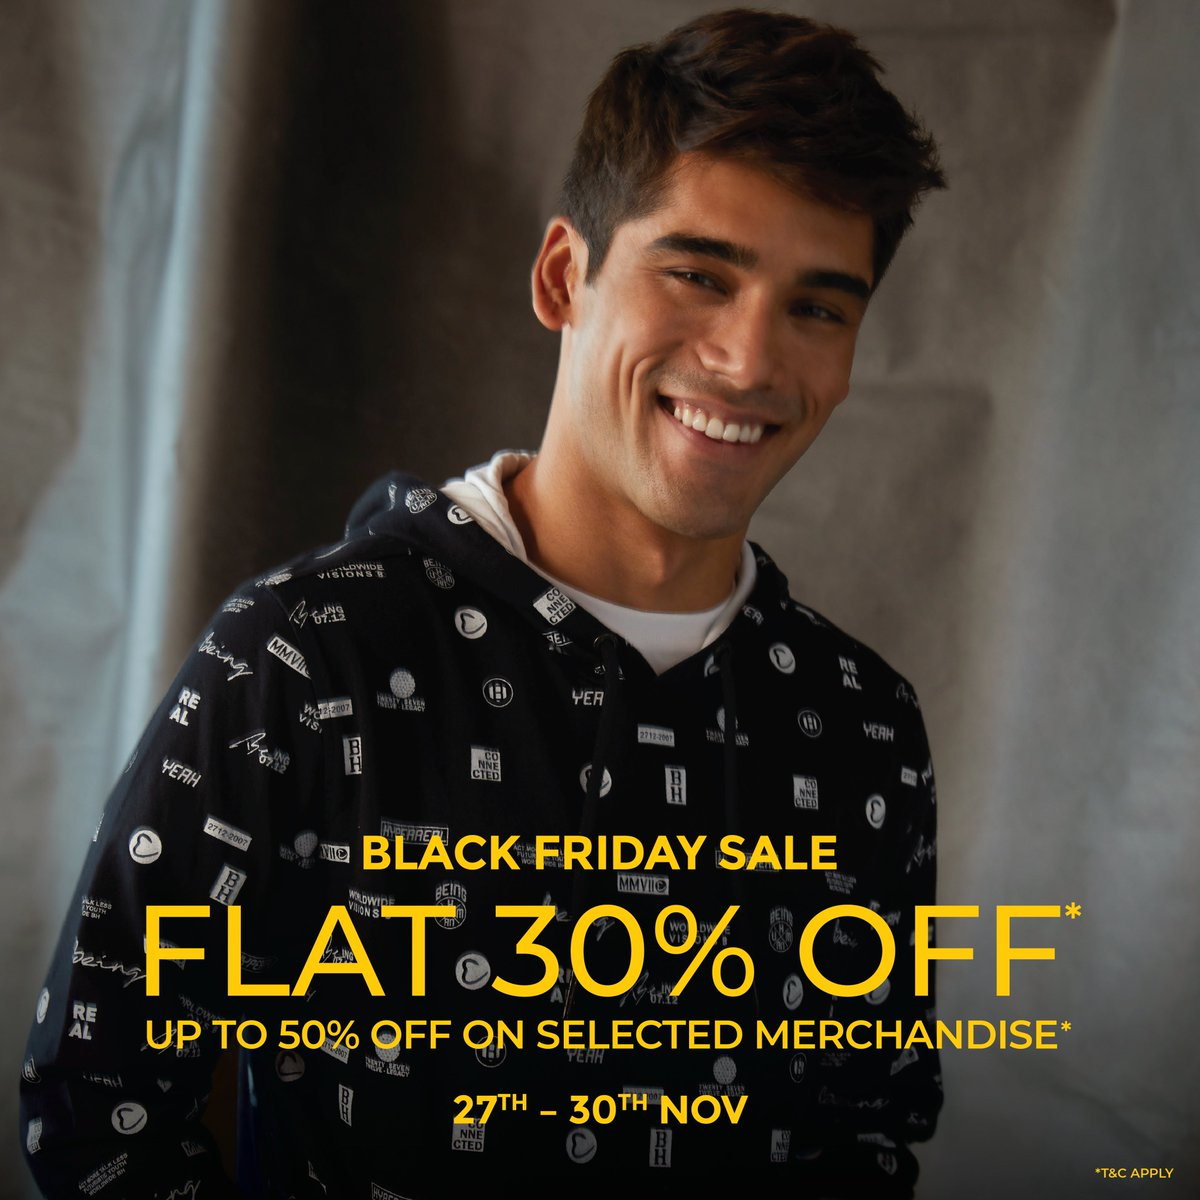 Black Friday Weekend Sale begins today🖤  Here's your chance to enjoy FLAT 30% off & up to 50% on selected merchandise🎉  #beinghumanclothing #lovecareshare